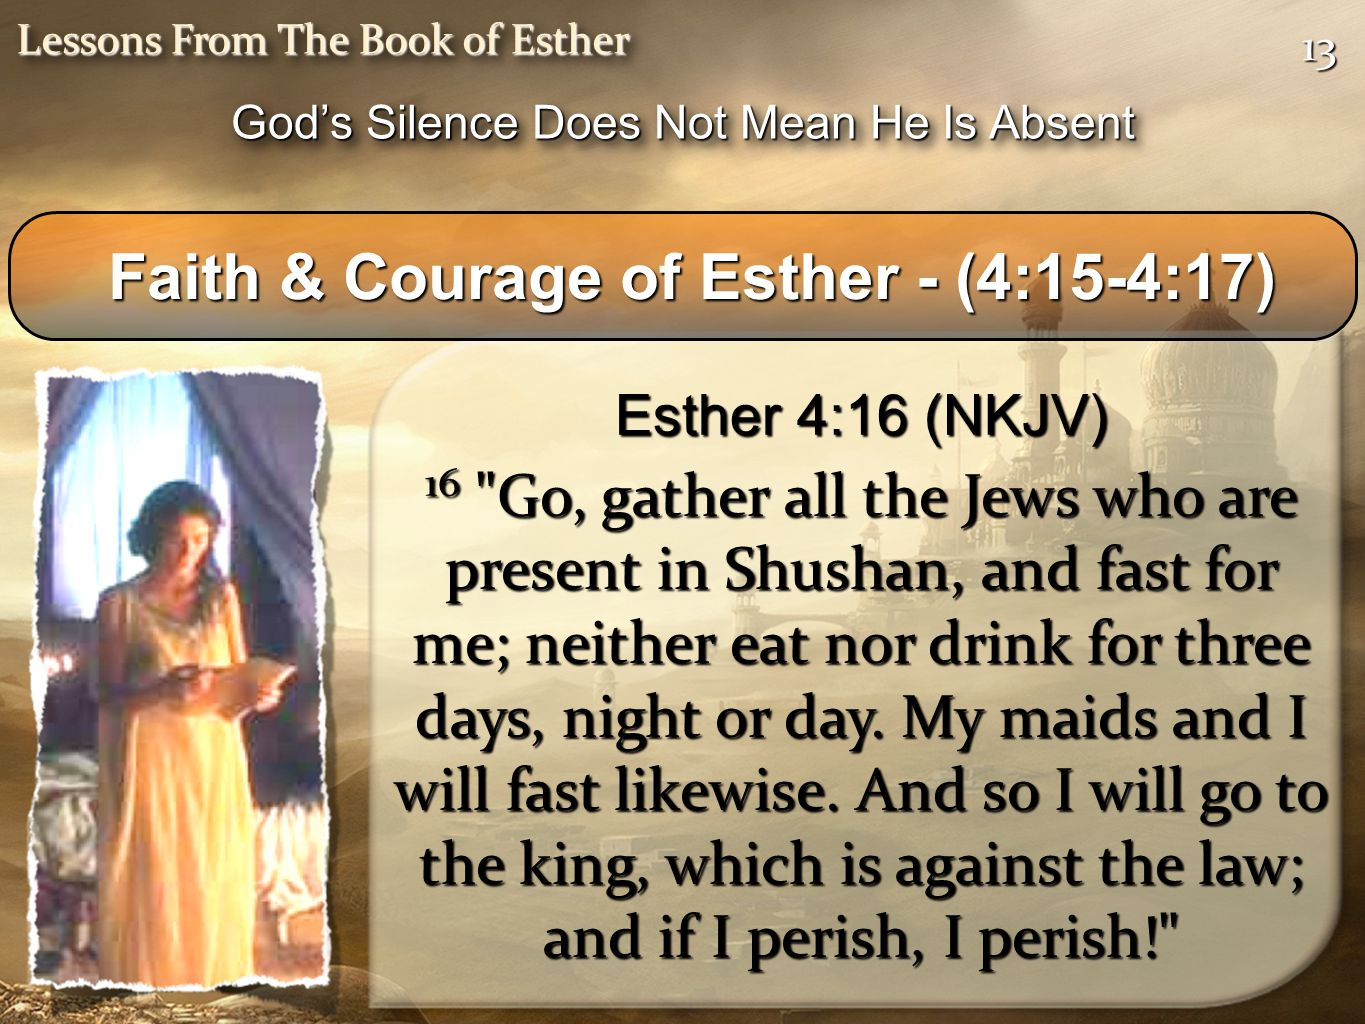 1313 Lessons From The Book of Esther Faith & Courage of Esther - (4:15-4:17) Faith & Courage of Esther - (4:15-4:17) Esther 4:16 (NKJV) 16 Go, gather all the Jews who are present in Shushan, and fast for me; neither eat nor drink for three days, night or day.